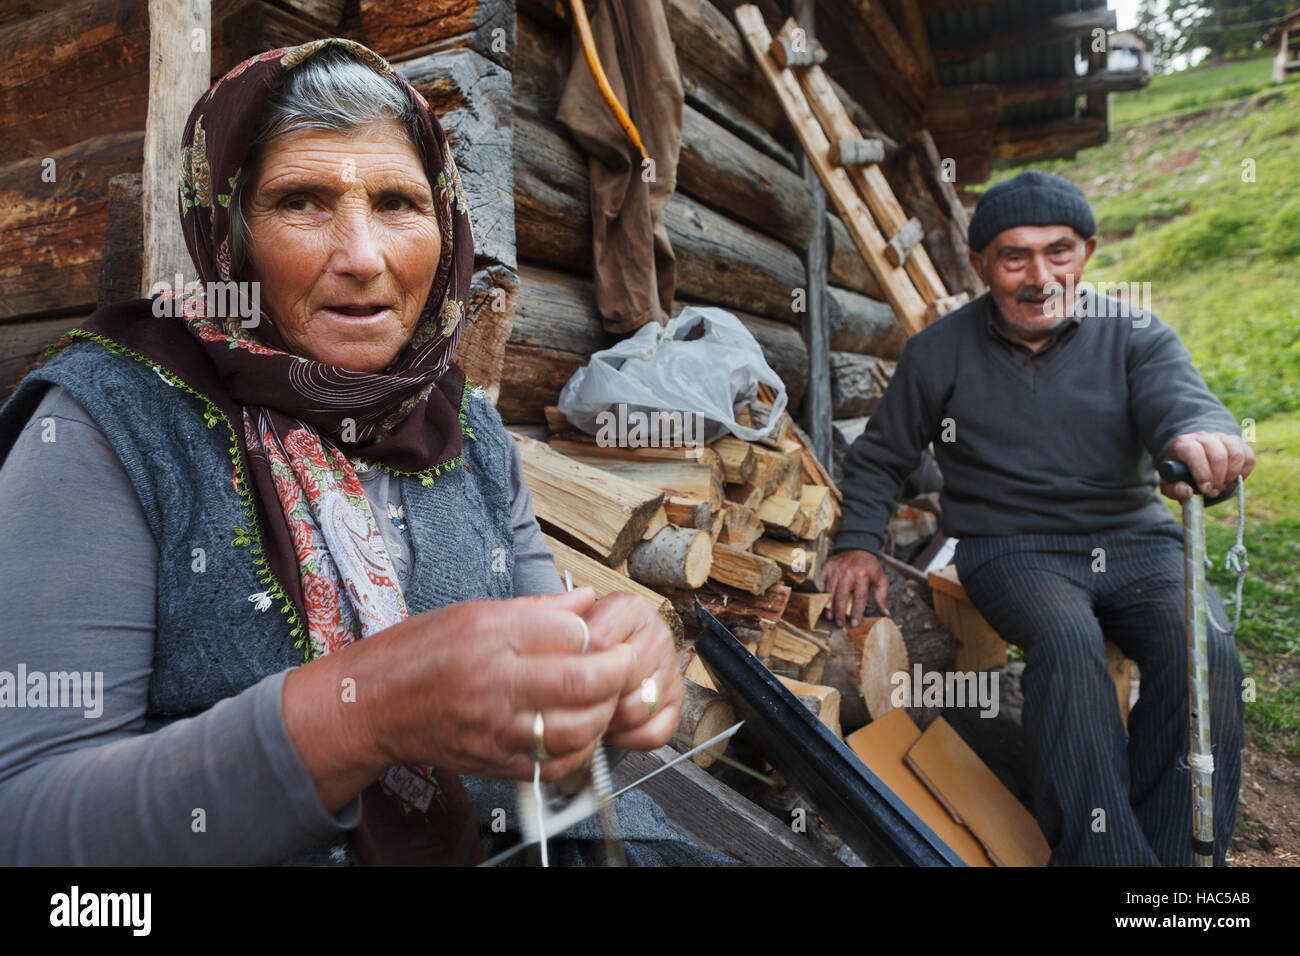 ld couple in Savsat province in Artvin,Turkey. Old woman knit the traditional wool sock for winter in front of her - Stock Image